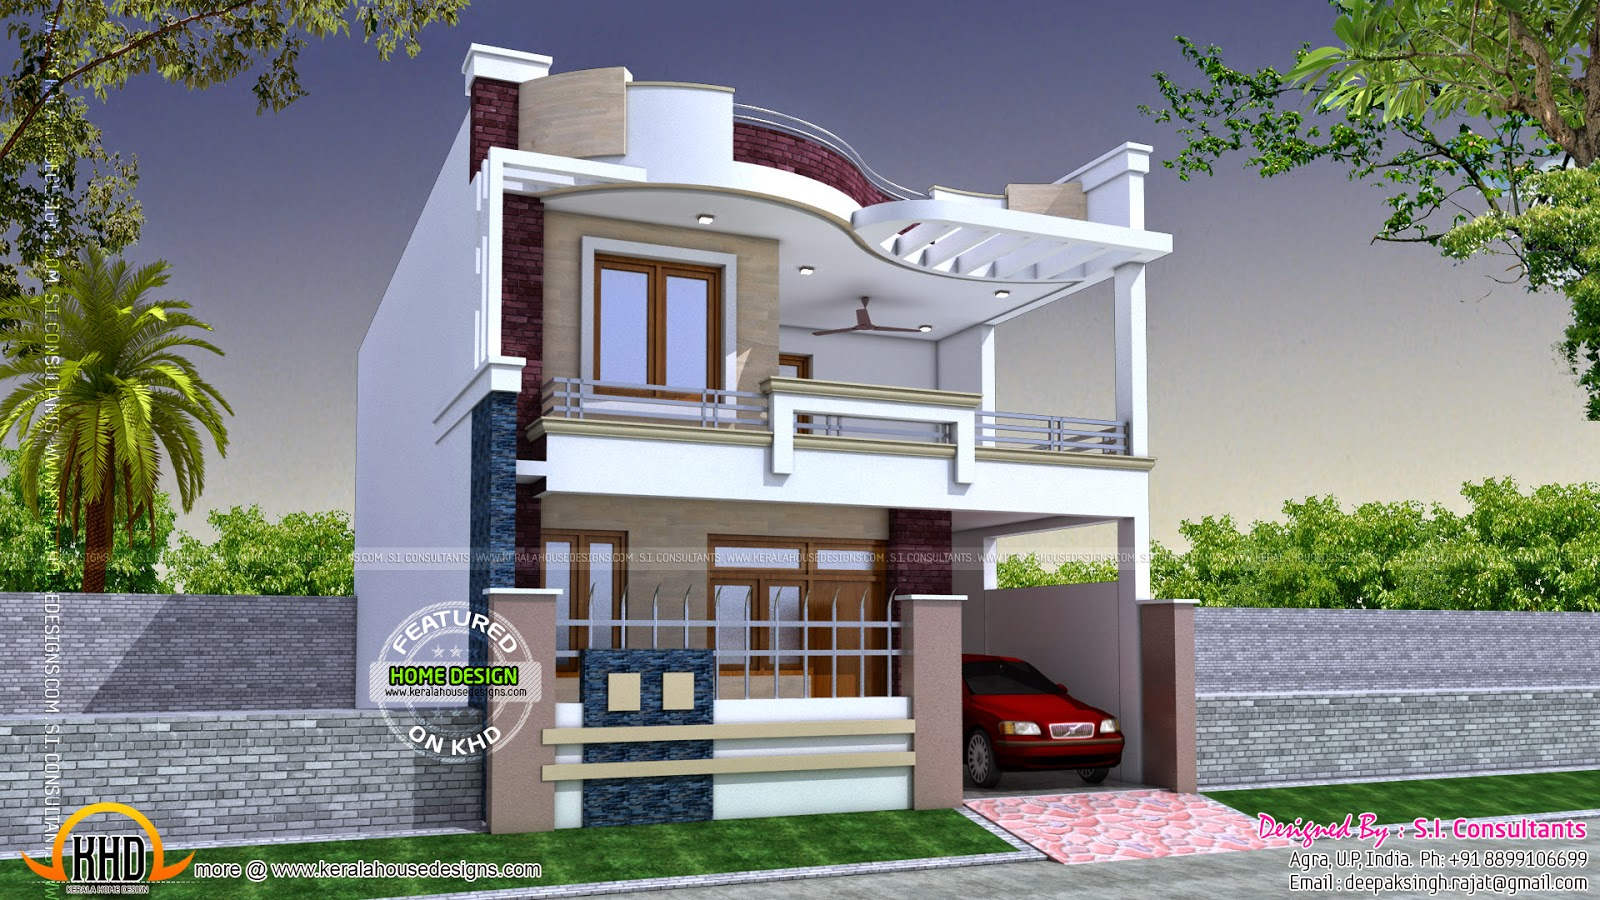 Modern indian home design kerala home design and floor plans for Indian house design architect